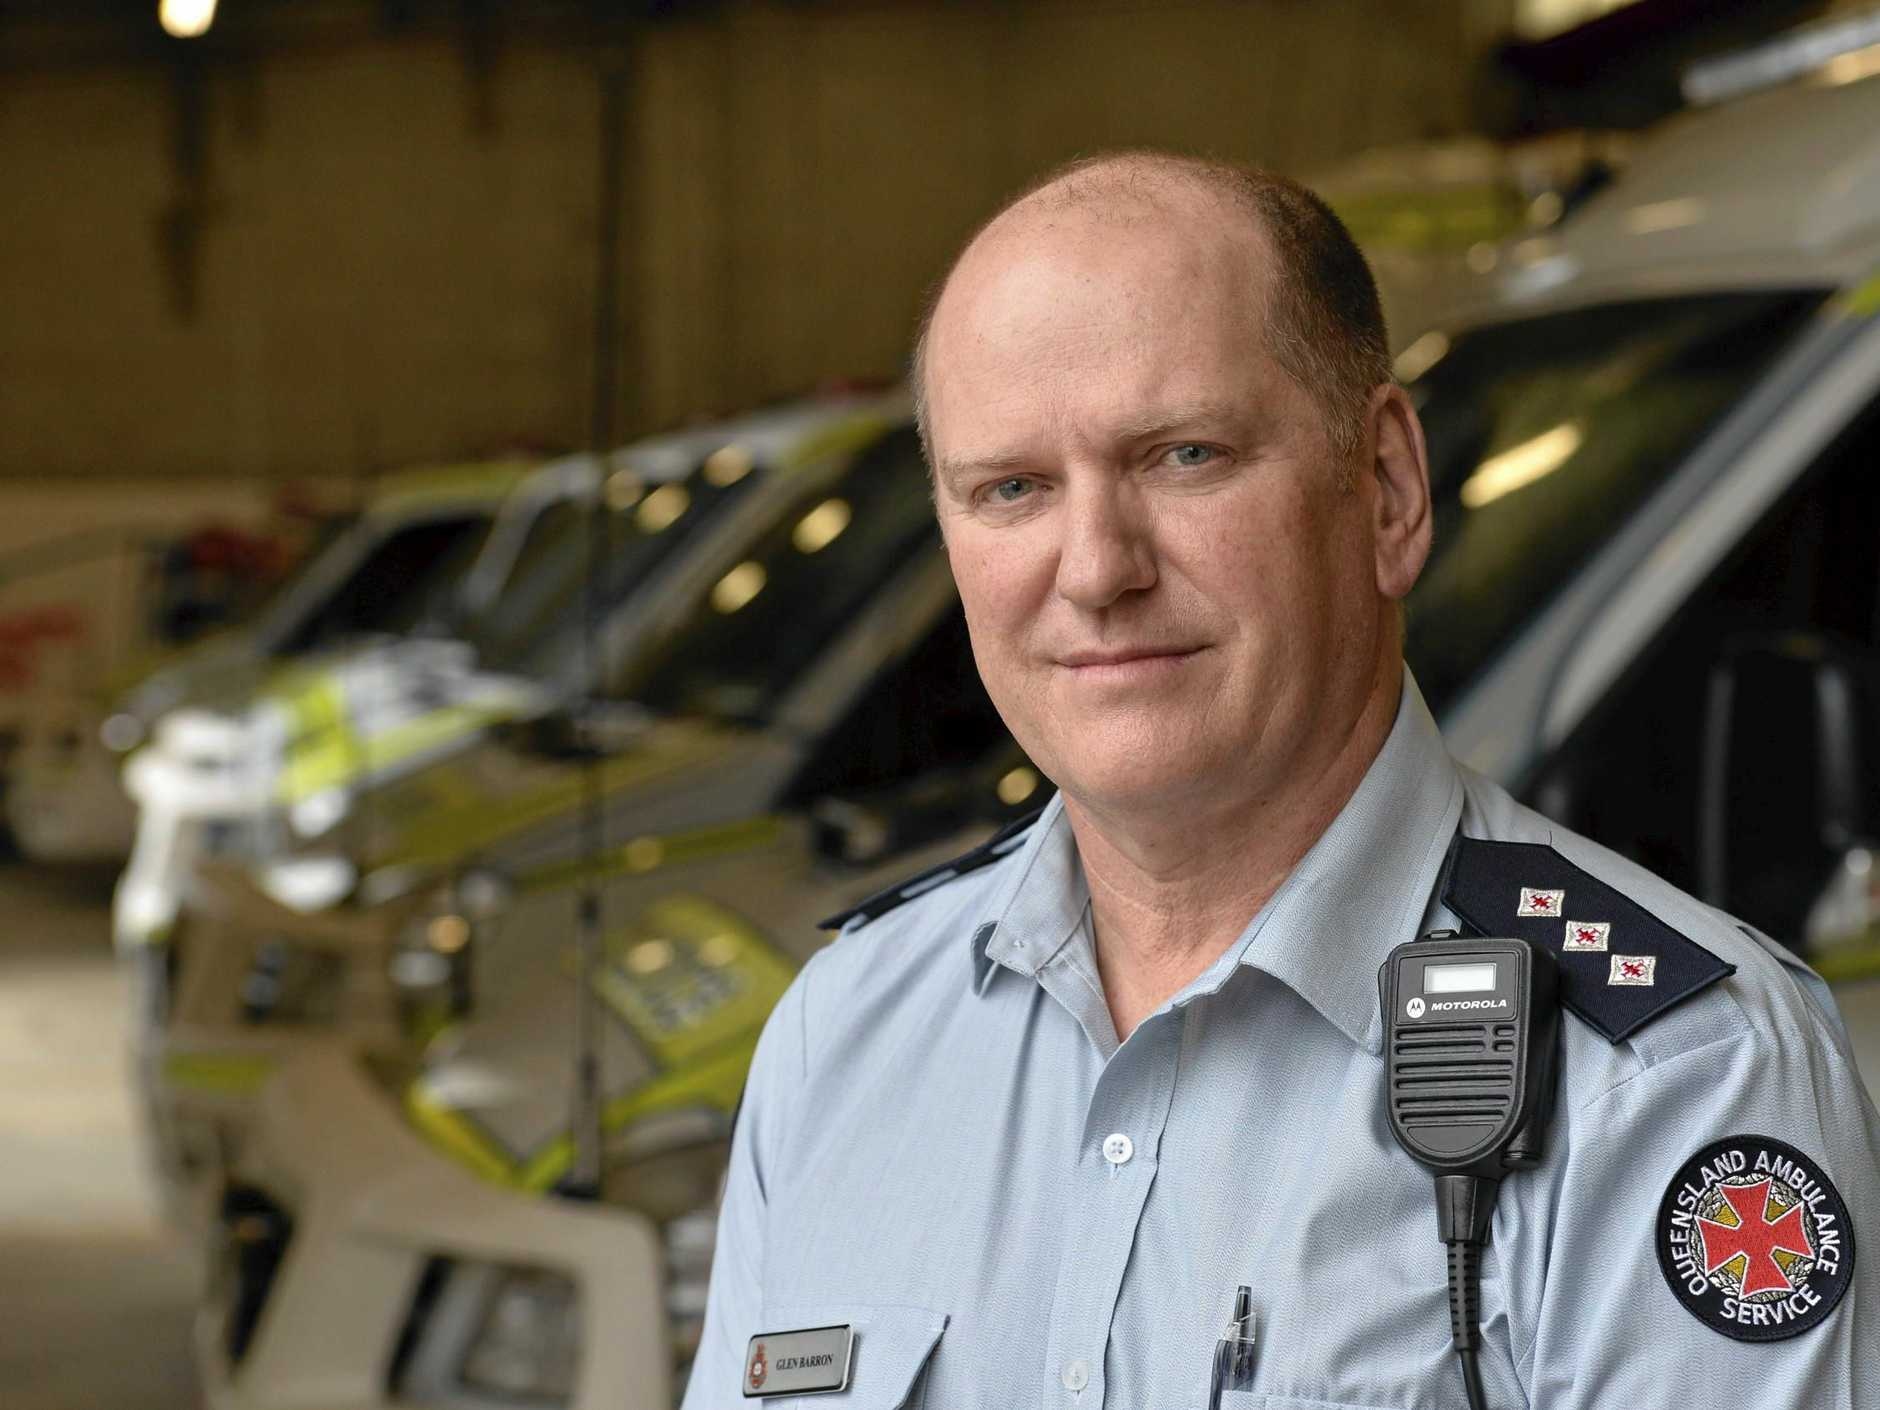 TAKING ACTION: Queensland Ambulance Service senior operations supervisor Glen Barron says it's important to educate young people about the dangers of swimming.